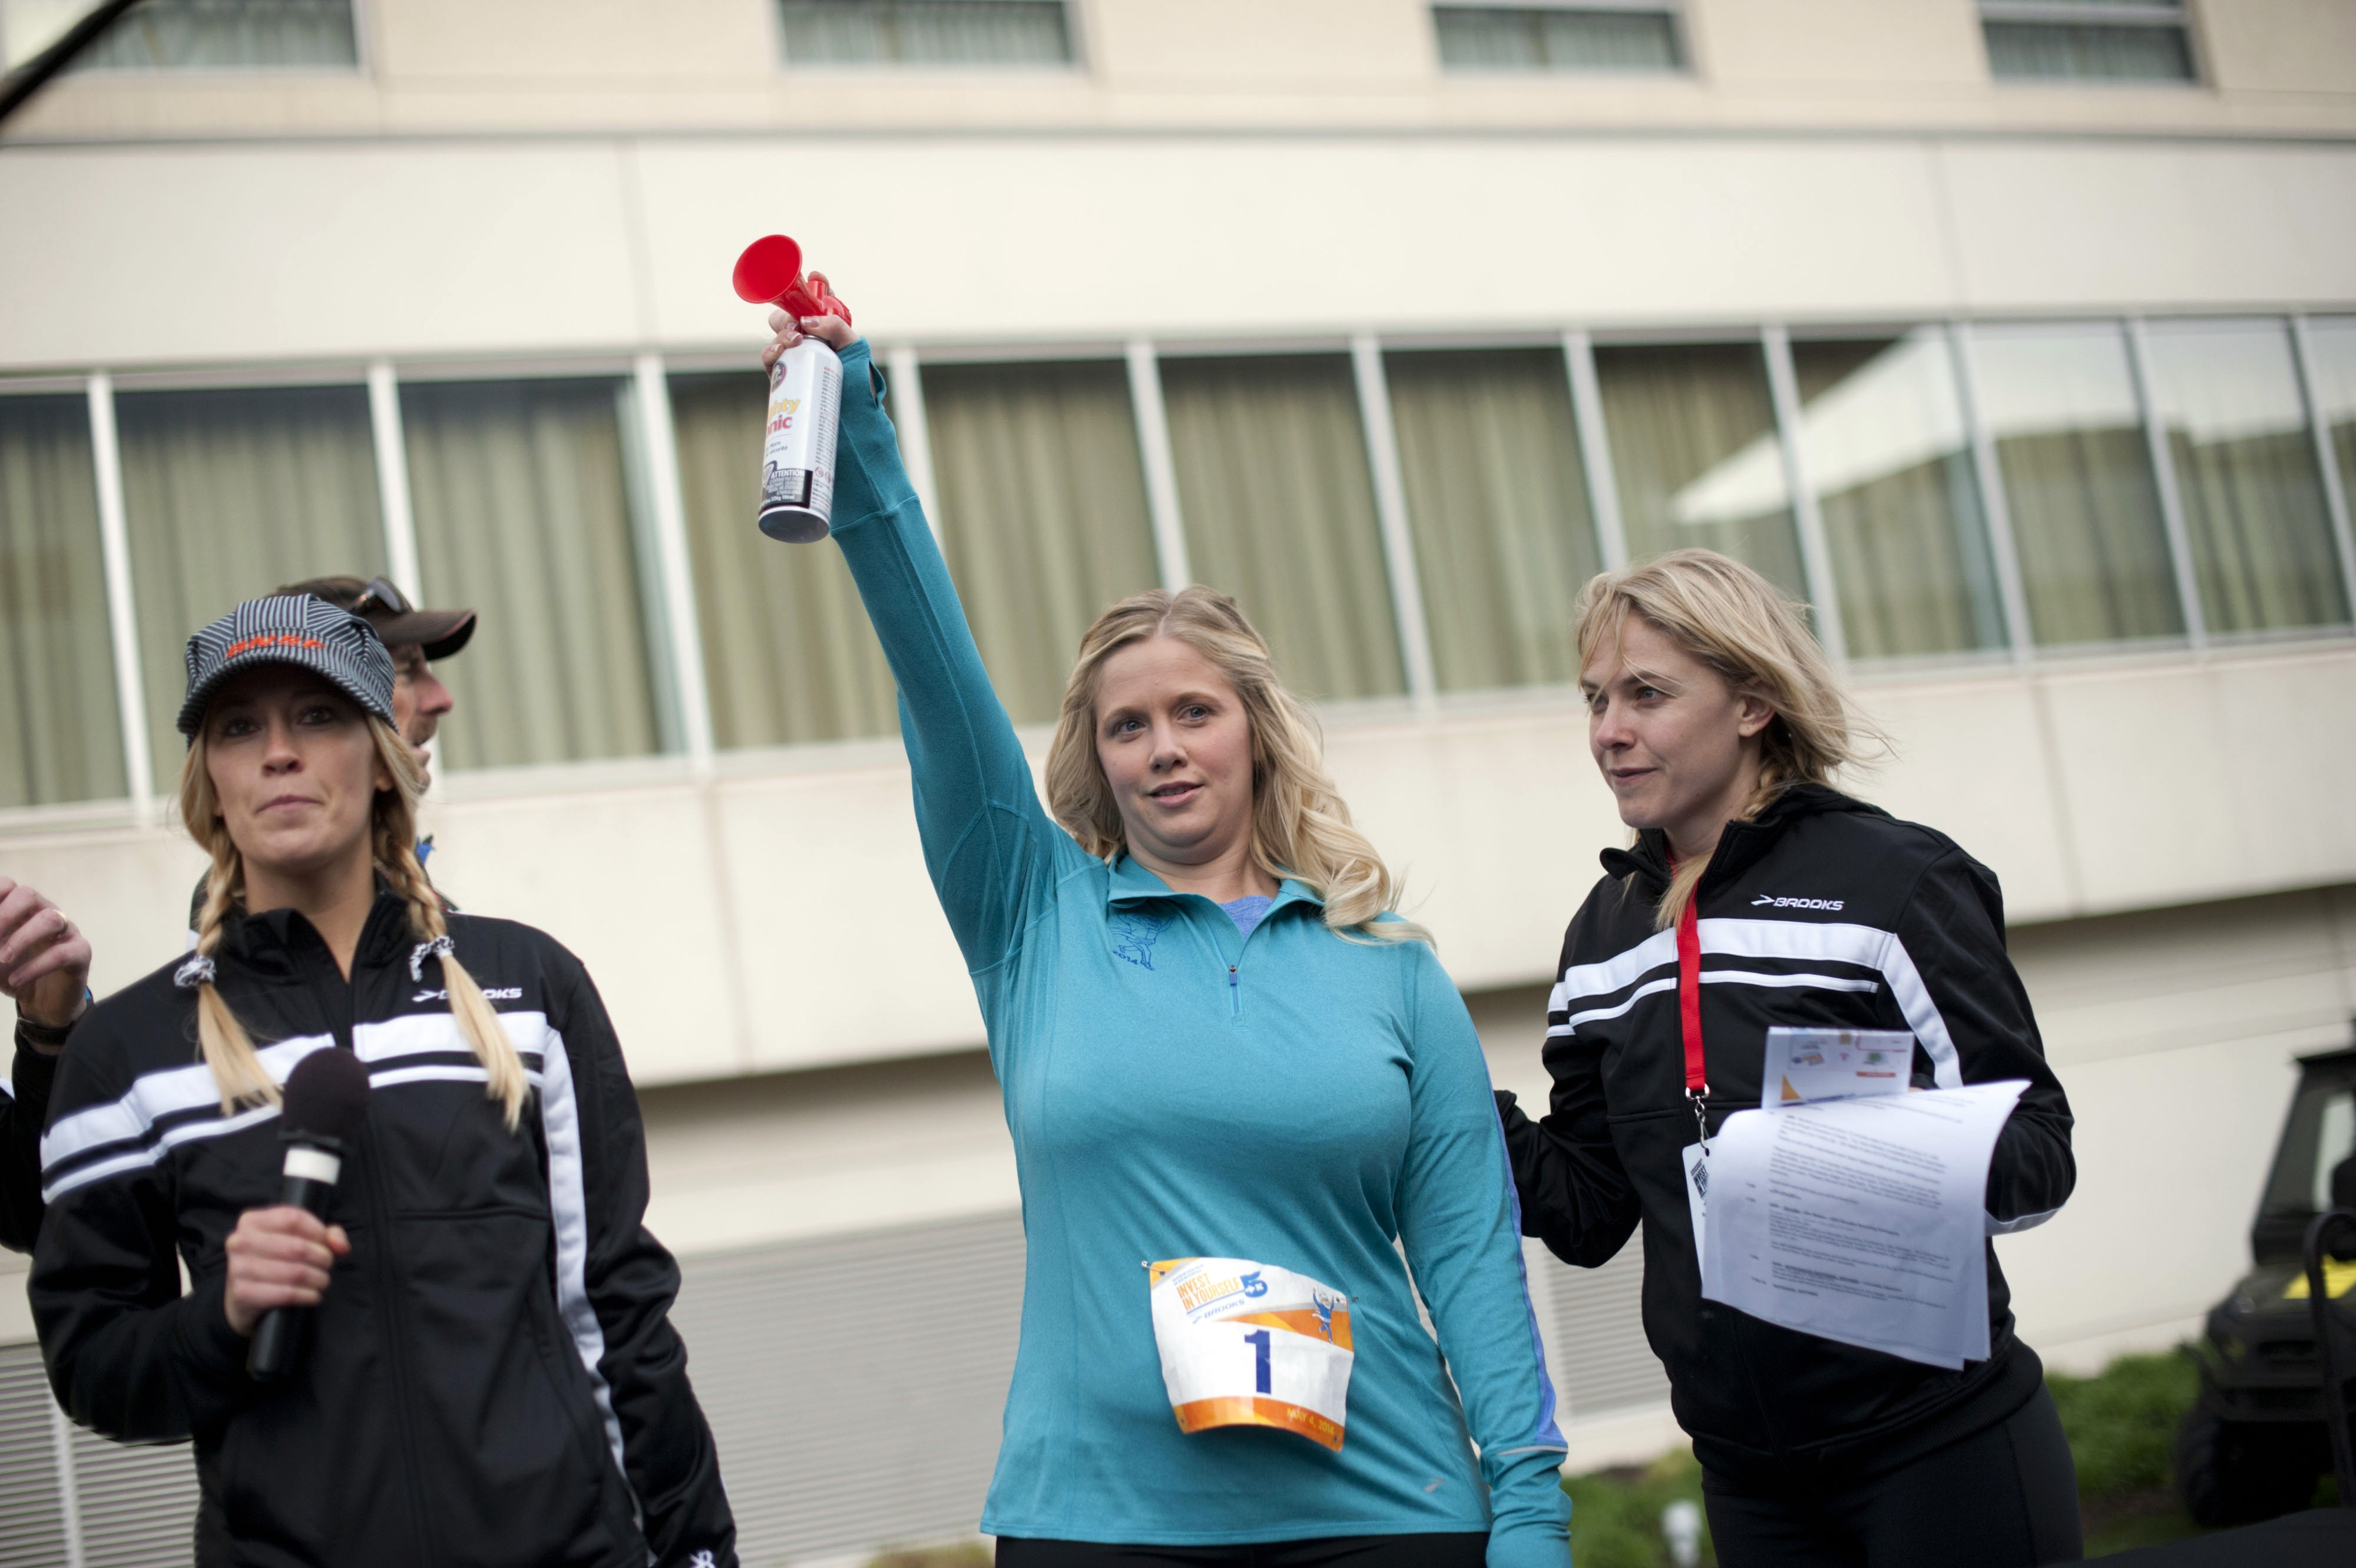 Warren Buffett protégé Tracy Britt Cool blasts an air-horn to start the 'Berkshire Hathaway Invest In Yourself 5K' race in May, 2014.